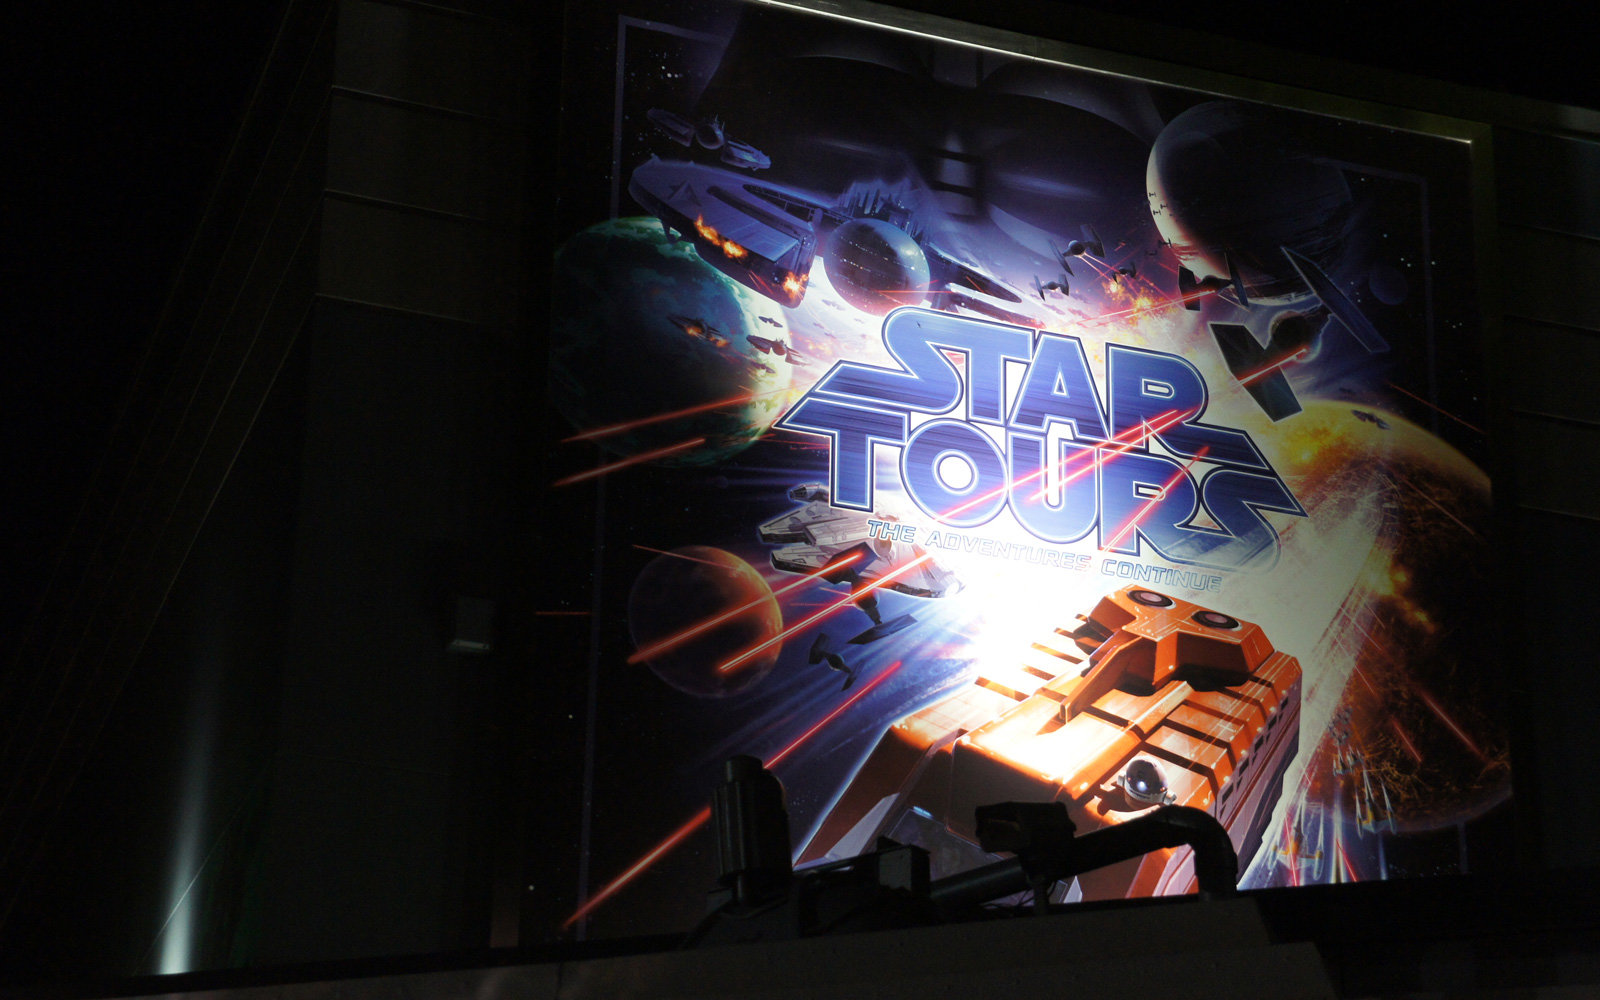 Star Tours at Disney World.